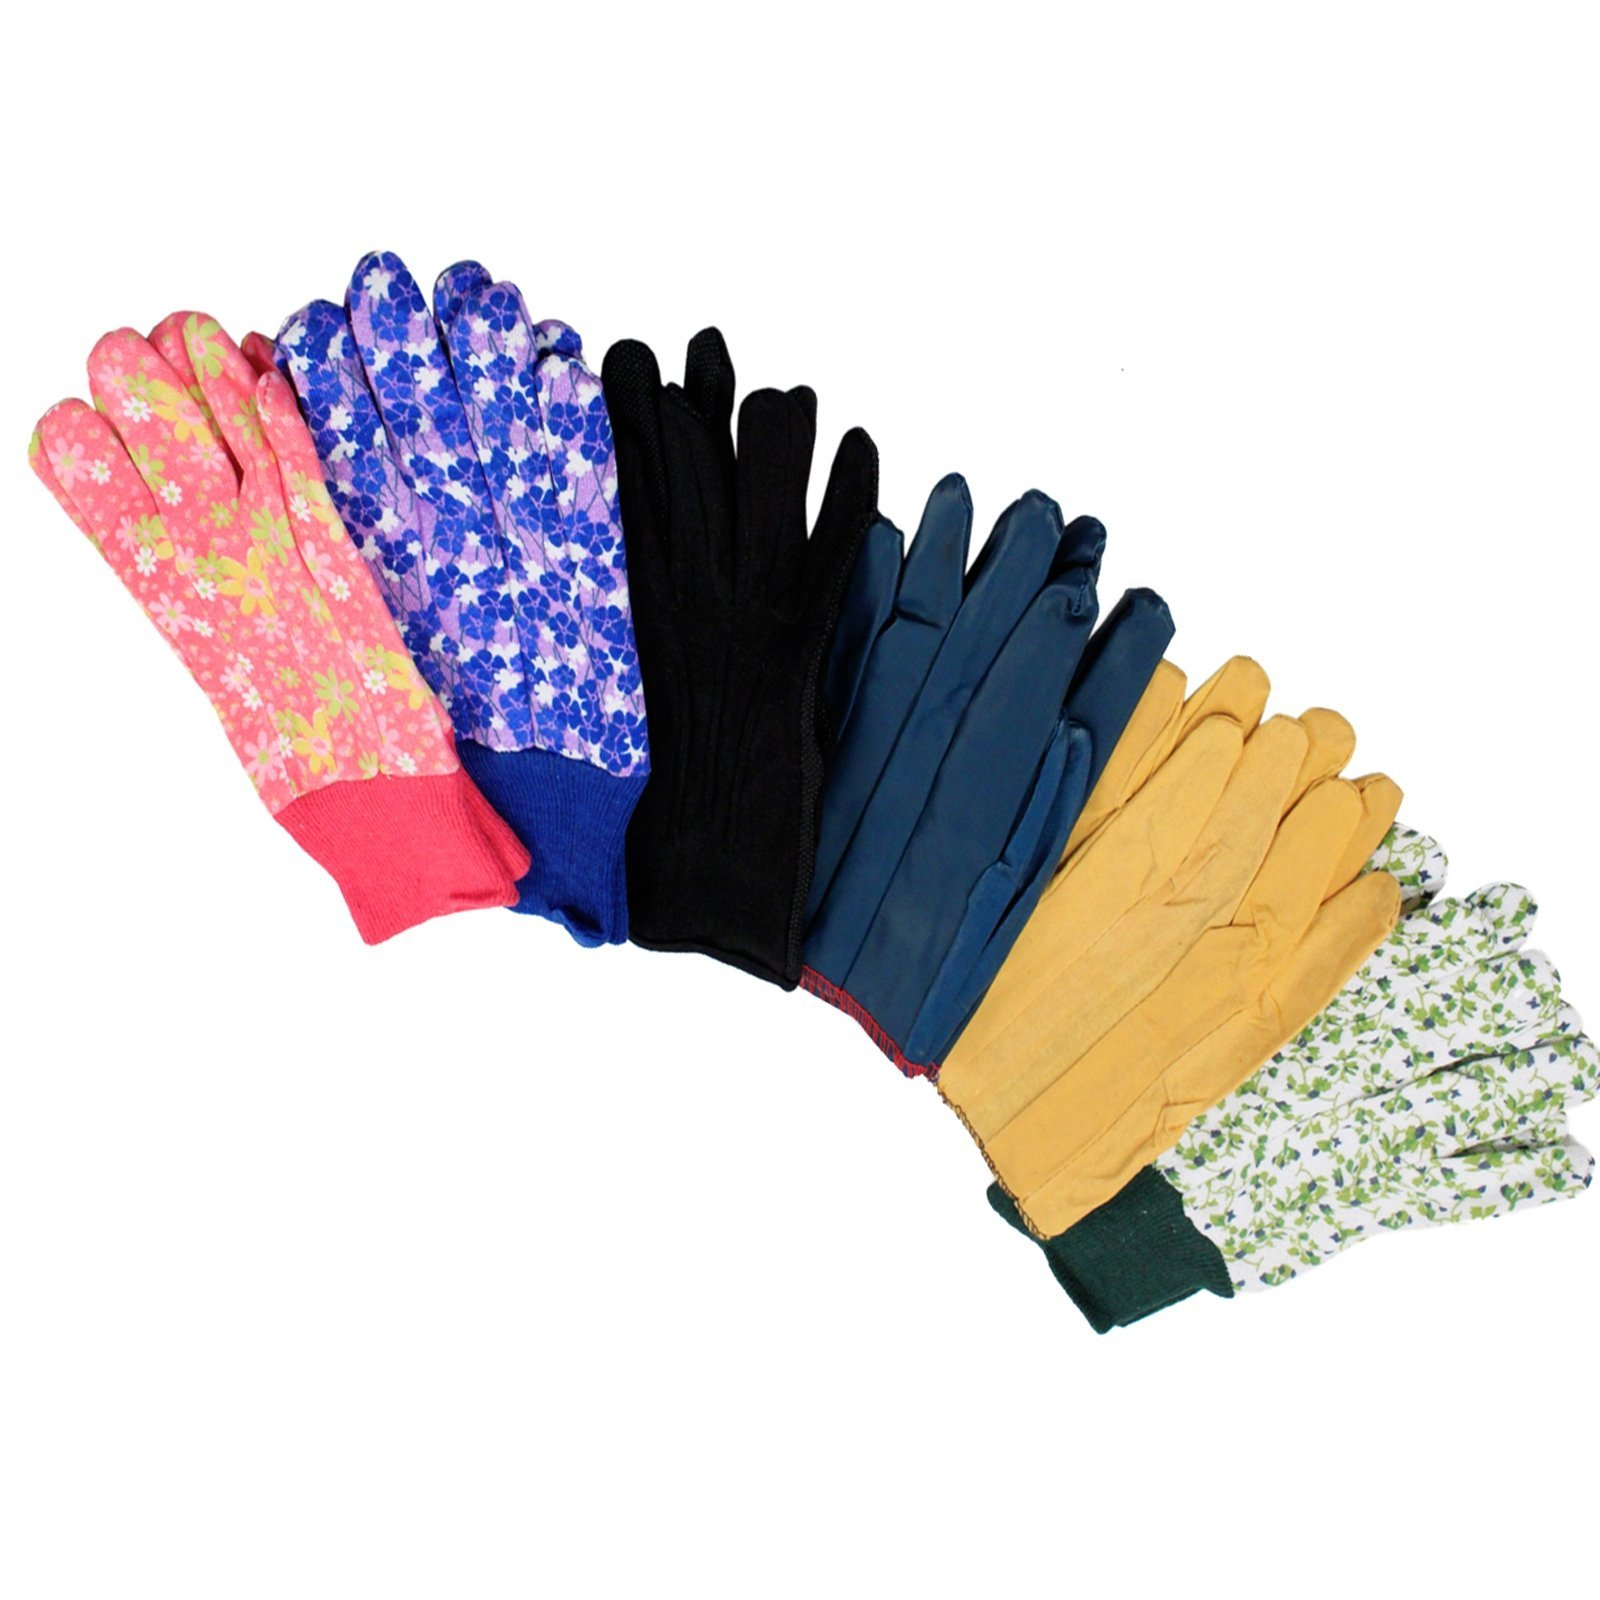 6pk Assorted Gardening Gloves Universal Fit Durable Multi-Design